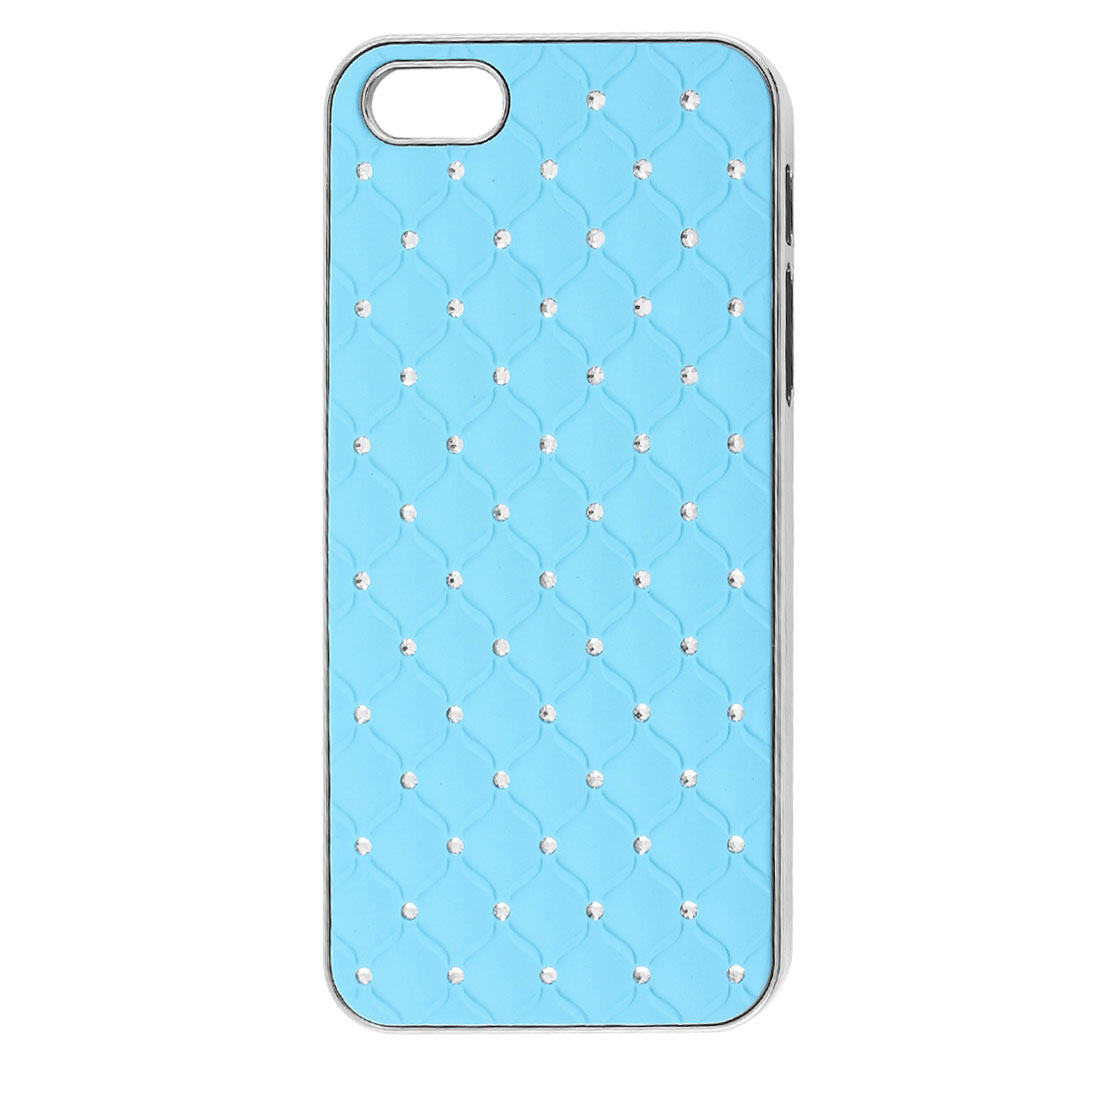 Sky Blue Glittery Bling Rhinestone Hard Back Case Cover for iPhone 5 5G 5th Gen